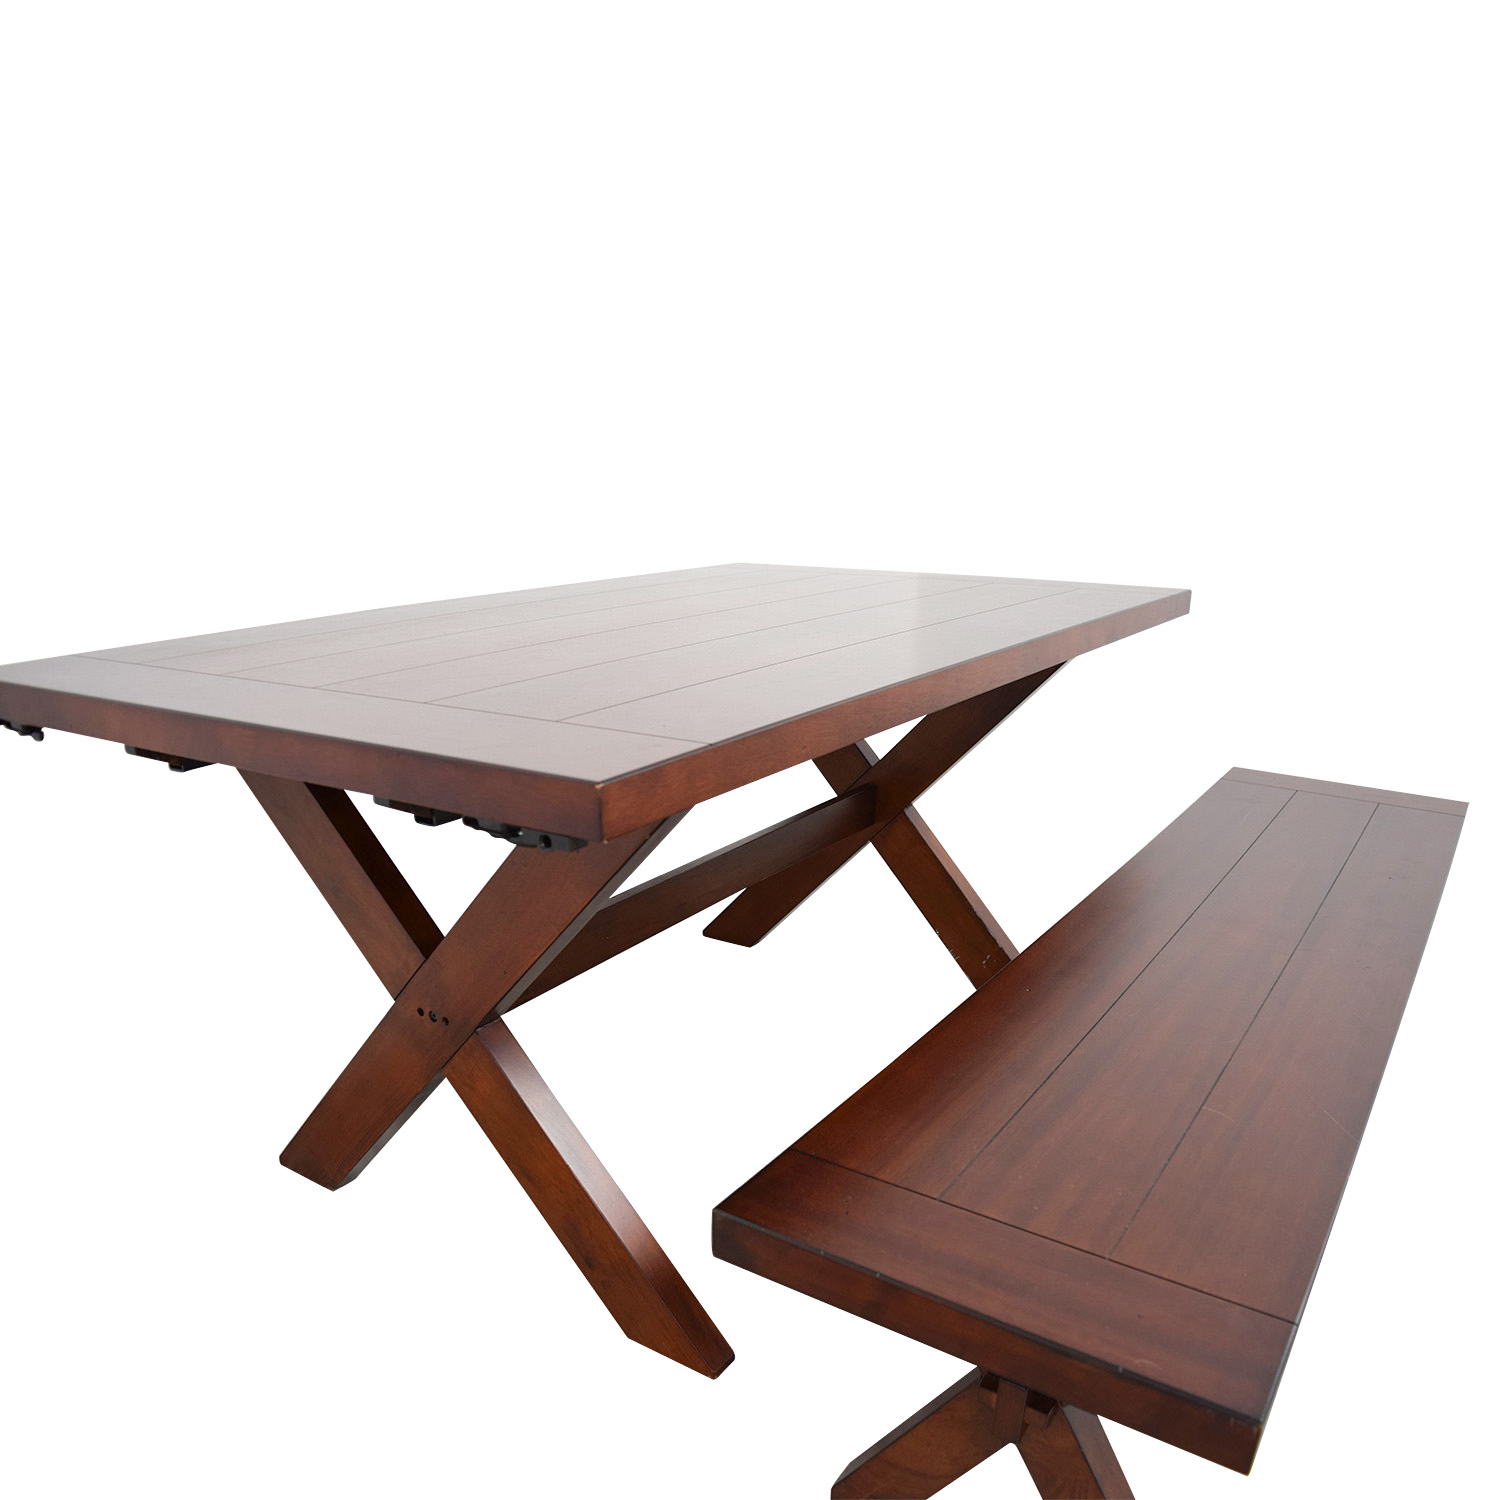 Groovy 90 Off Pier 1 Pier 1 Imports Nolan Wood Dining Table With Bench Tables Ocoug Best Dining Table And Chair Ideas Images Ocougorg